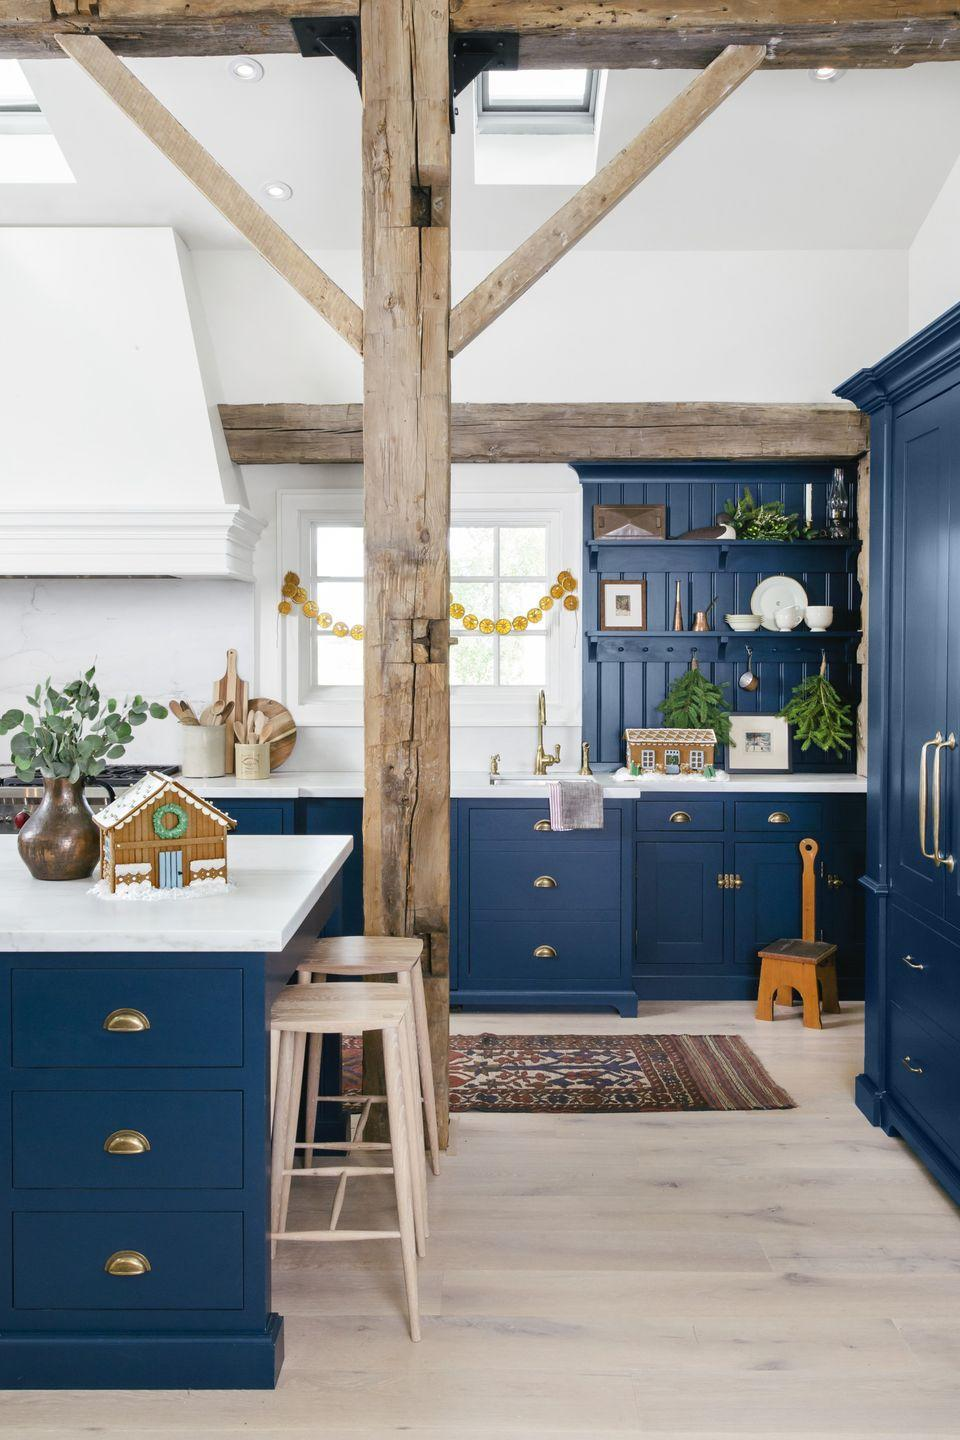 <p>Peg rail-lined shelves are the ideal spot to hang evergreen branches, while a simple garland adds contrast to the window. The sprawling central island is perfectly sized for baking pursuits, including a gingerbread barn. </p>